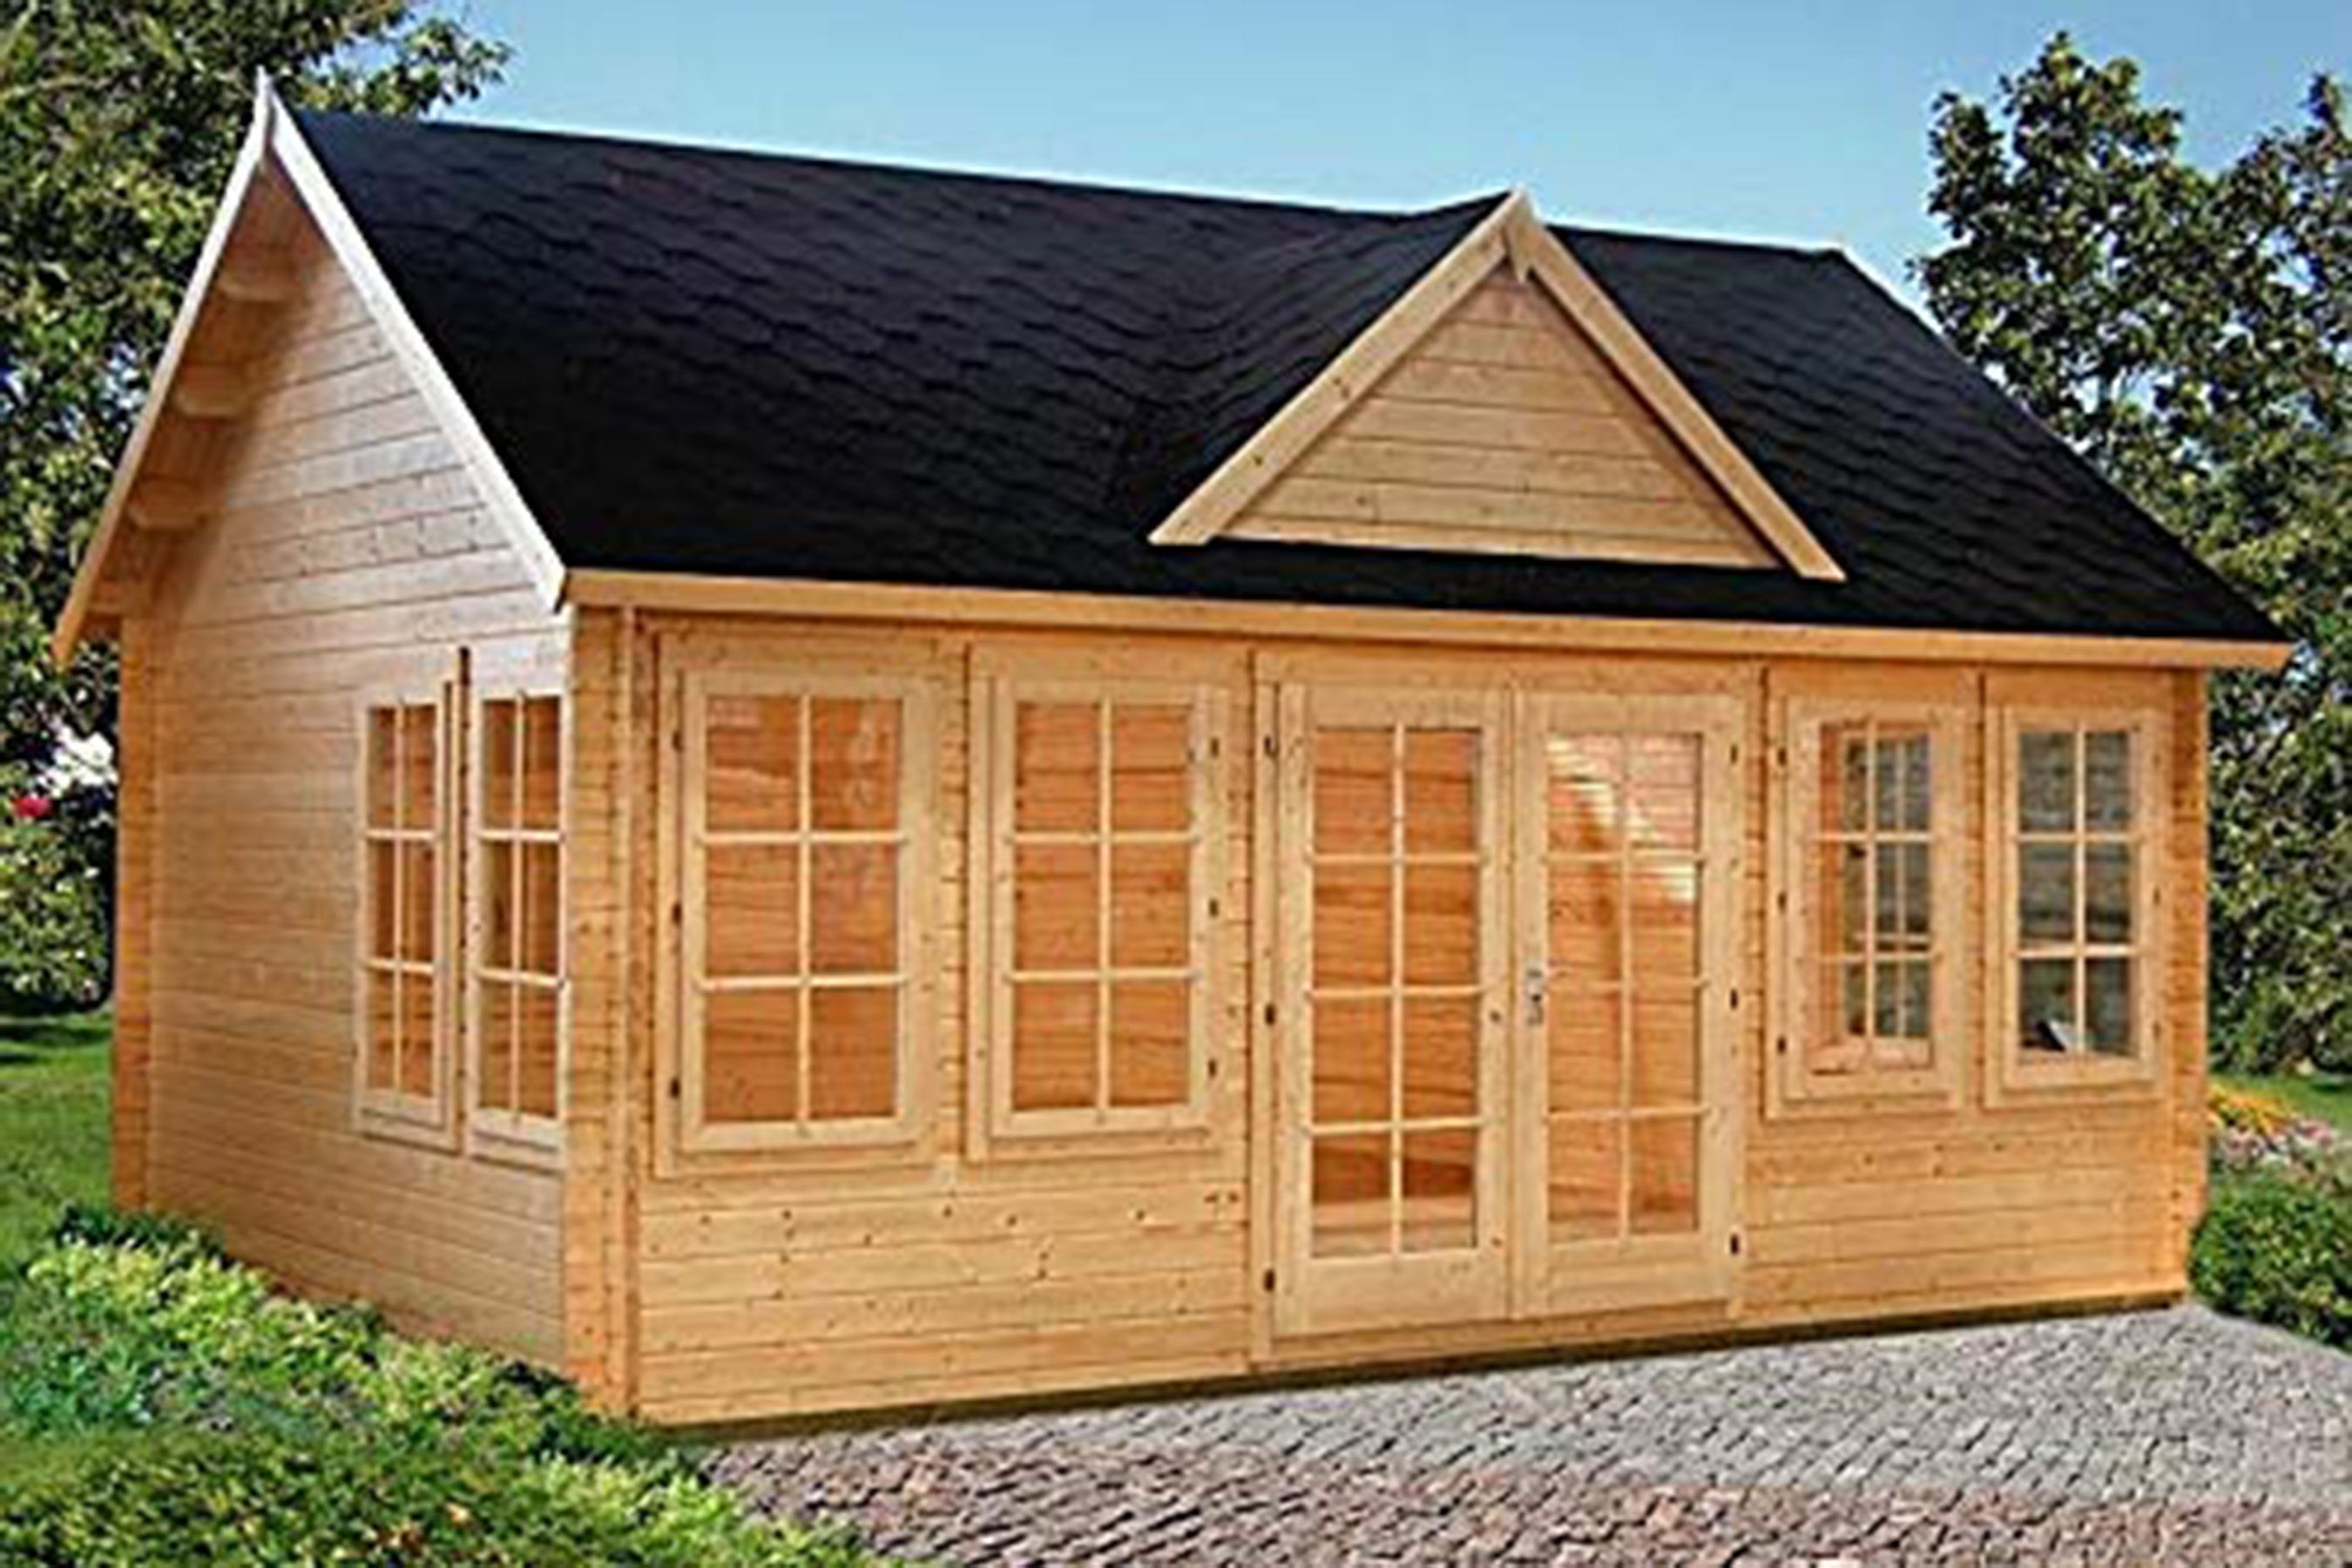 Yes You Can Buy A Tiny House On Amazon For 3 000 Here Are 12 Easy Diy Kits To Shop Now Prefab Cabin Kits Prefab Cabins Pool Houses